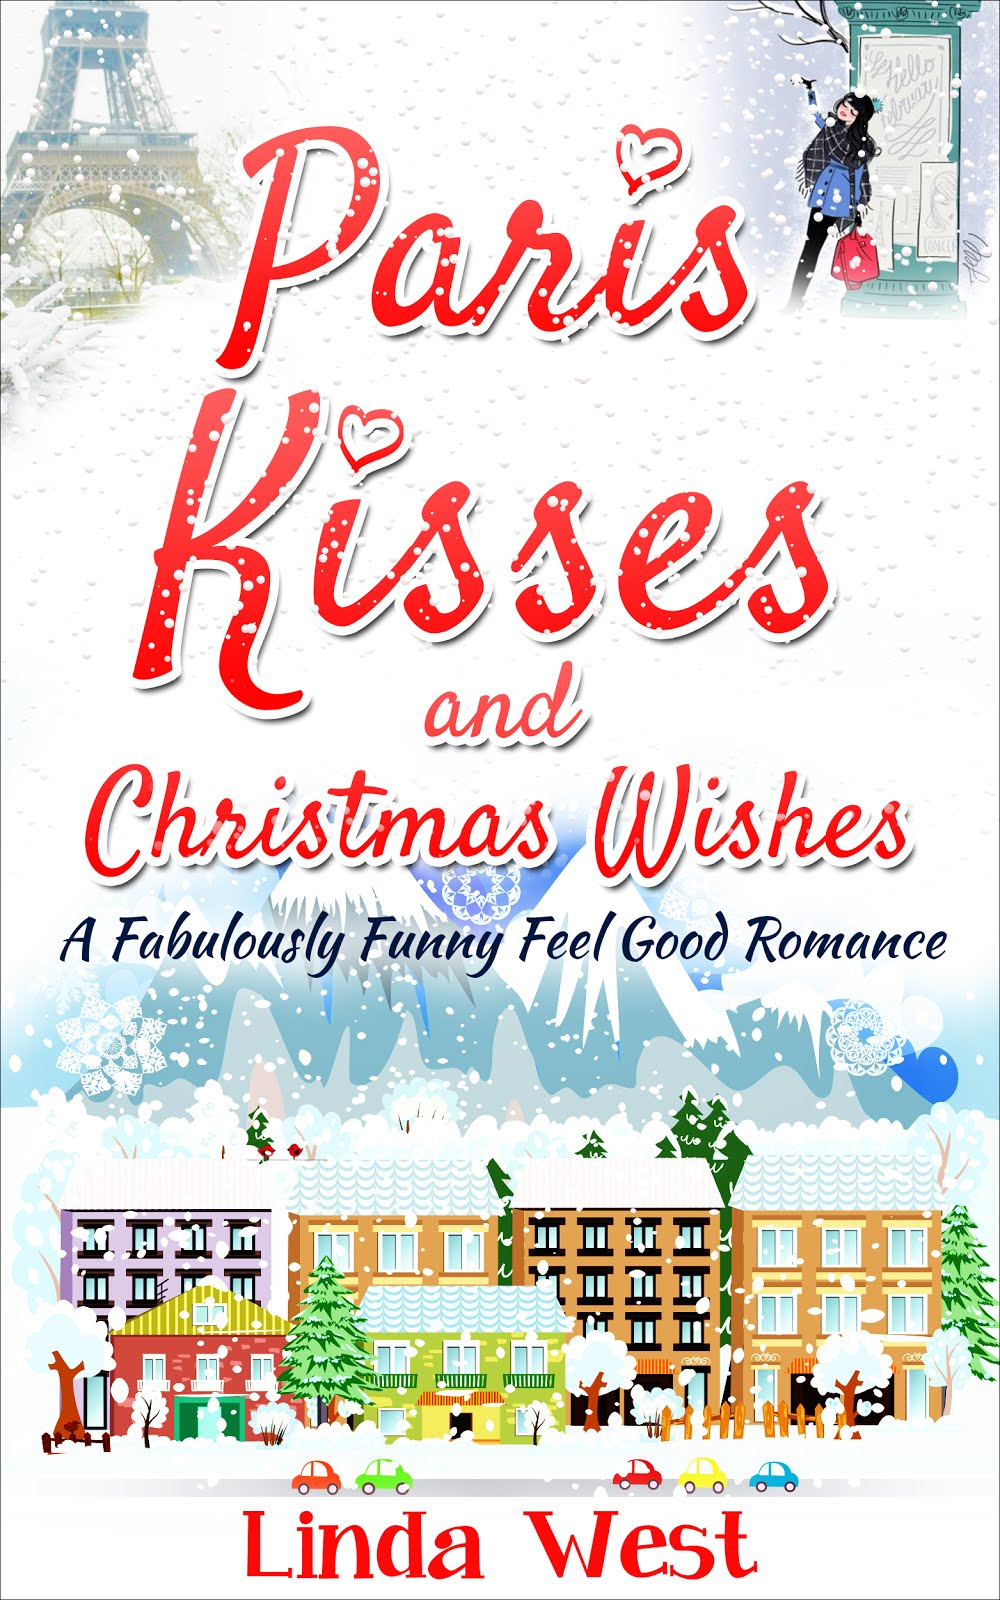 99 cents for this feel-good holiday romance!